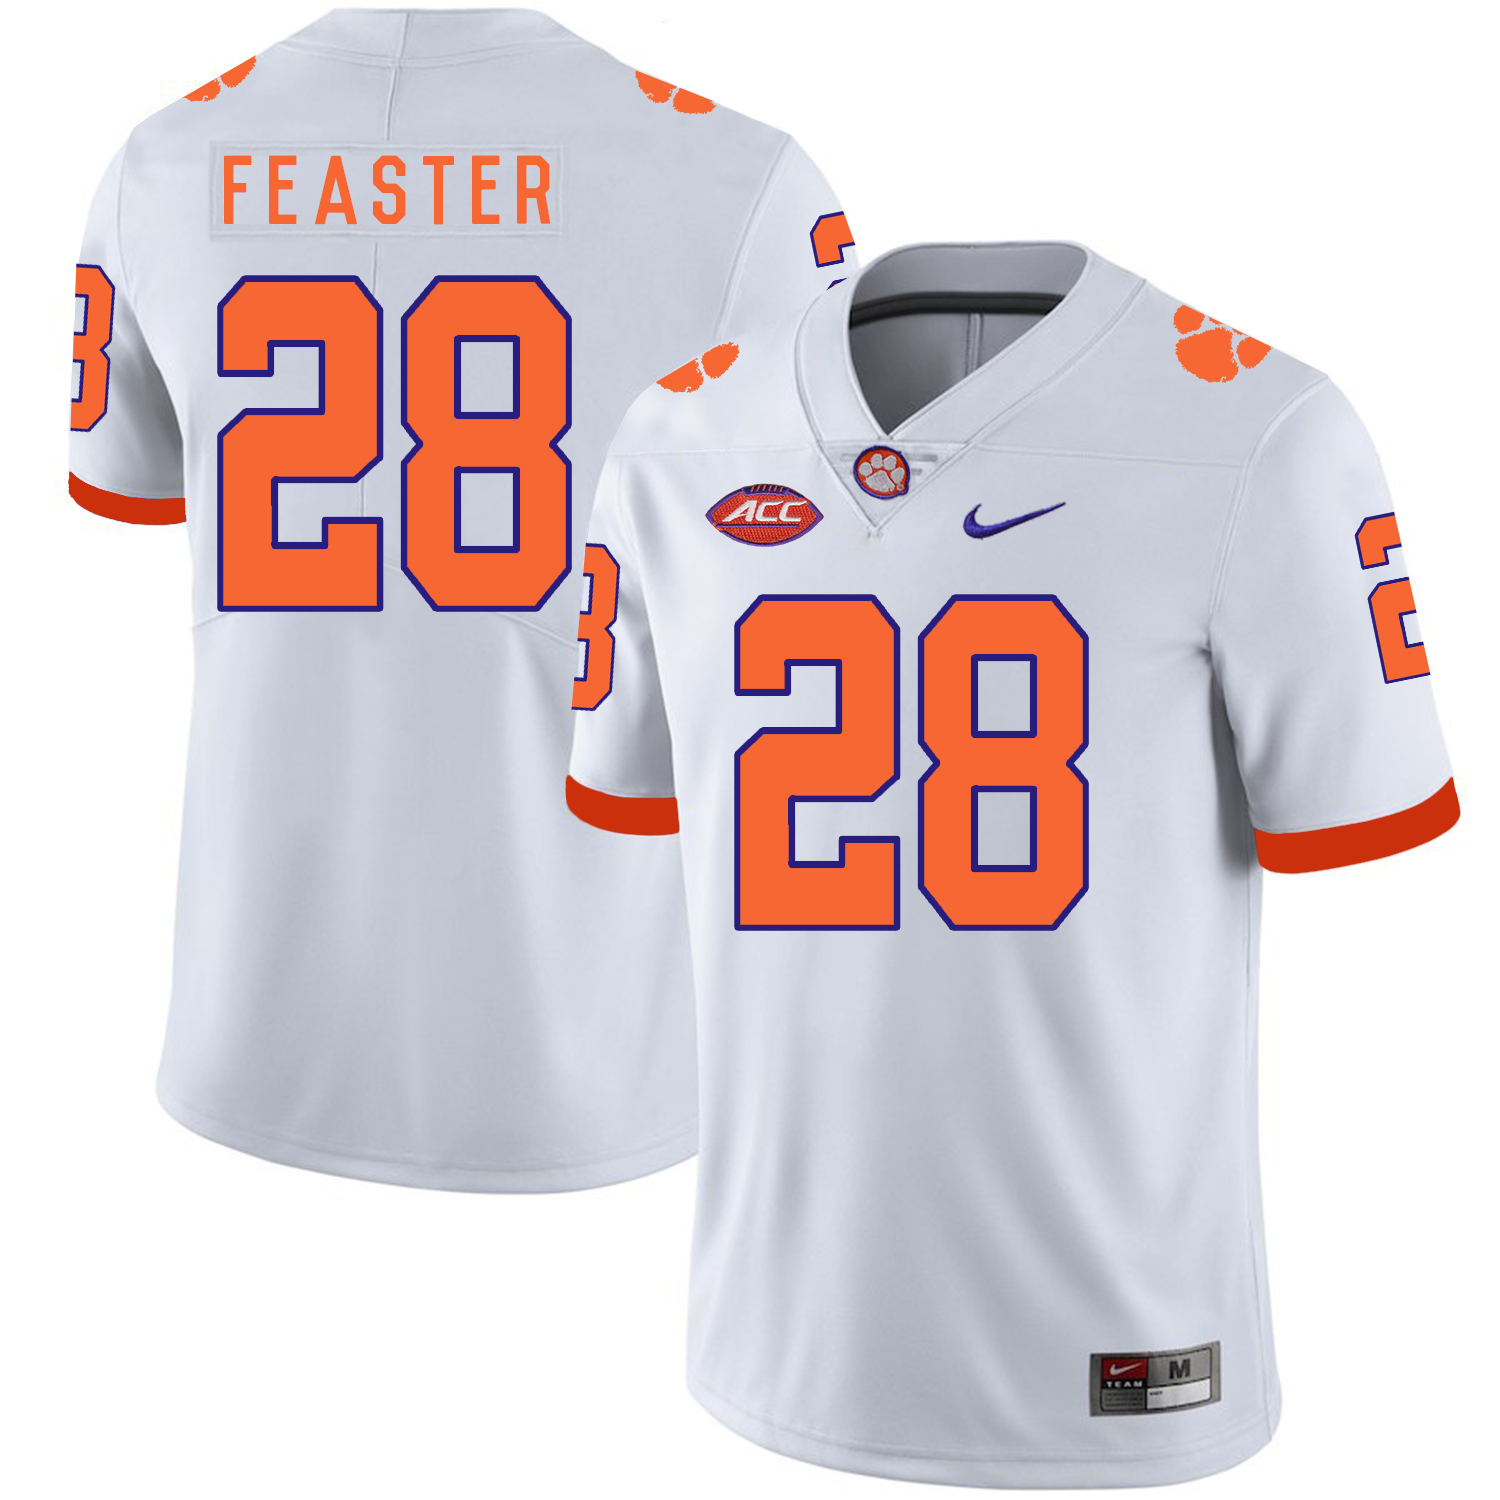 Clemson Tigers 28 Tavien Feaster White Nike College Football Jersey